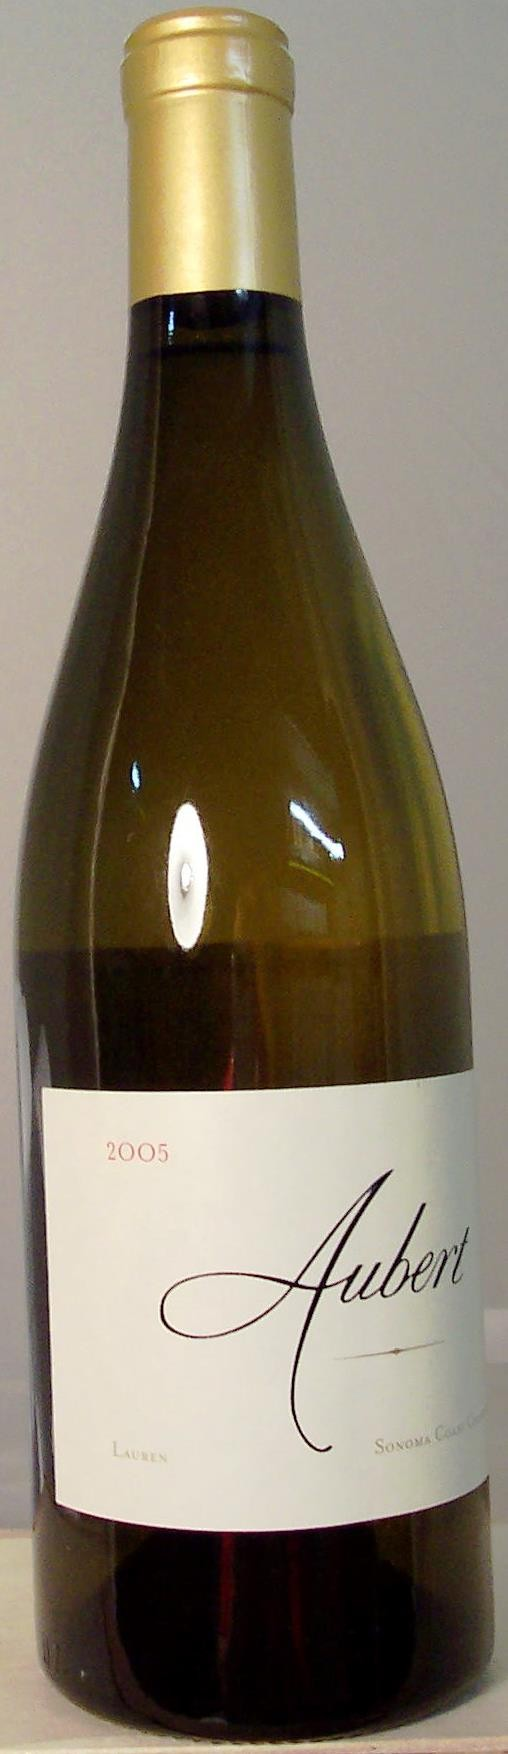 Aubert Wines Chardonnay Lauren Vineyard Sonoma Coast 2005